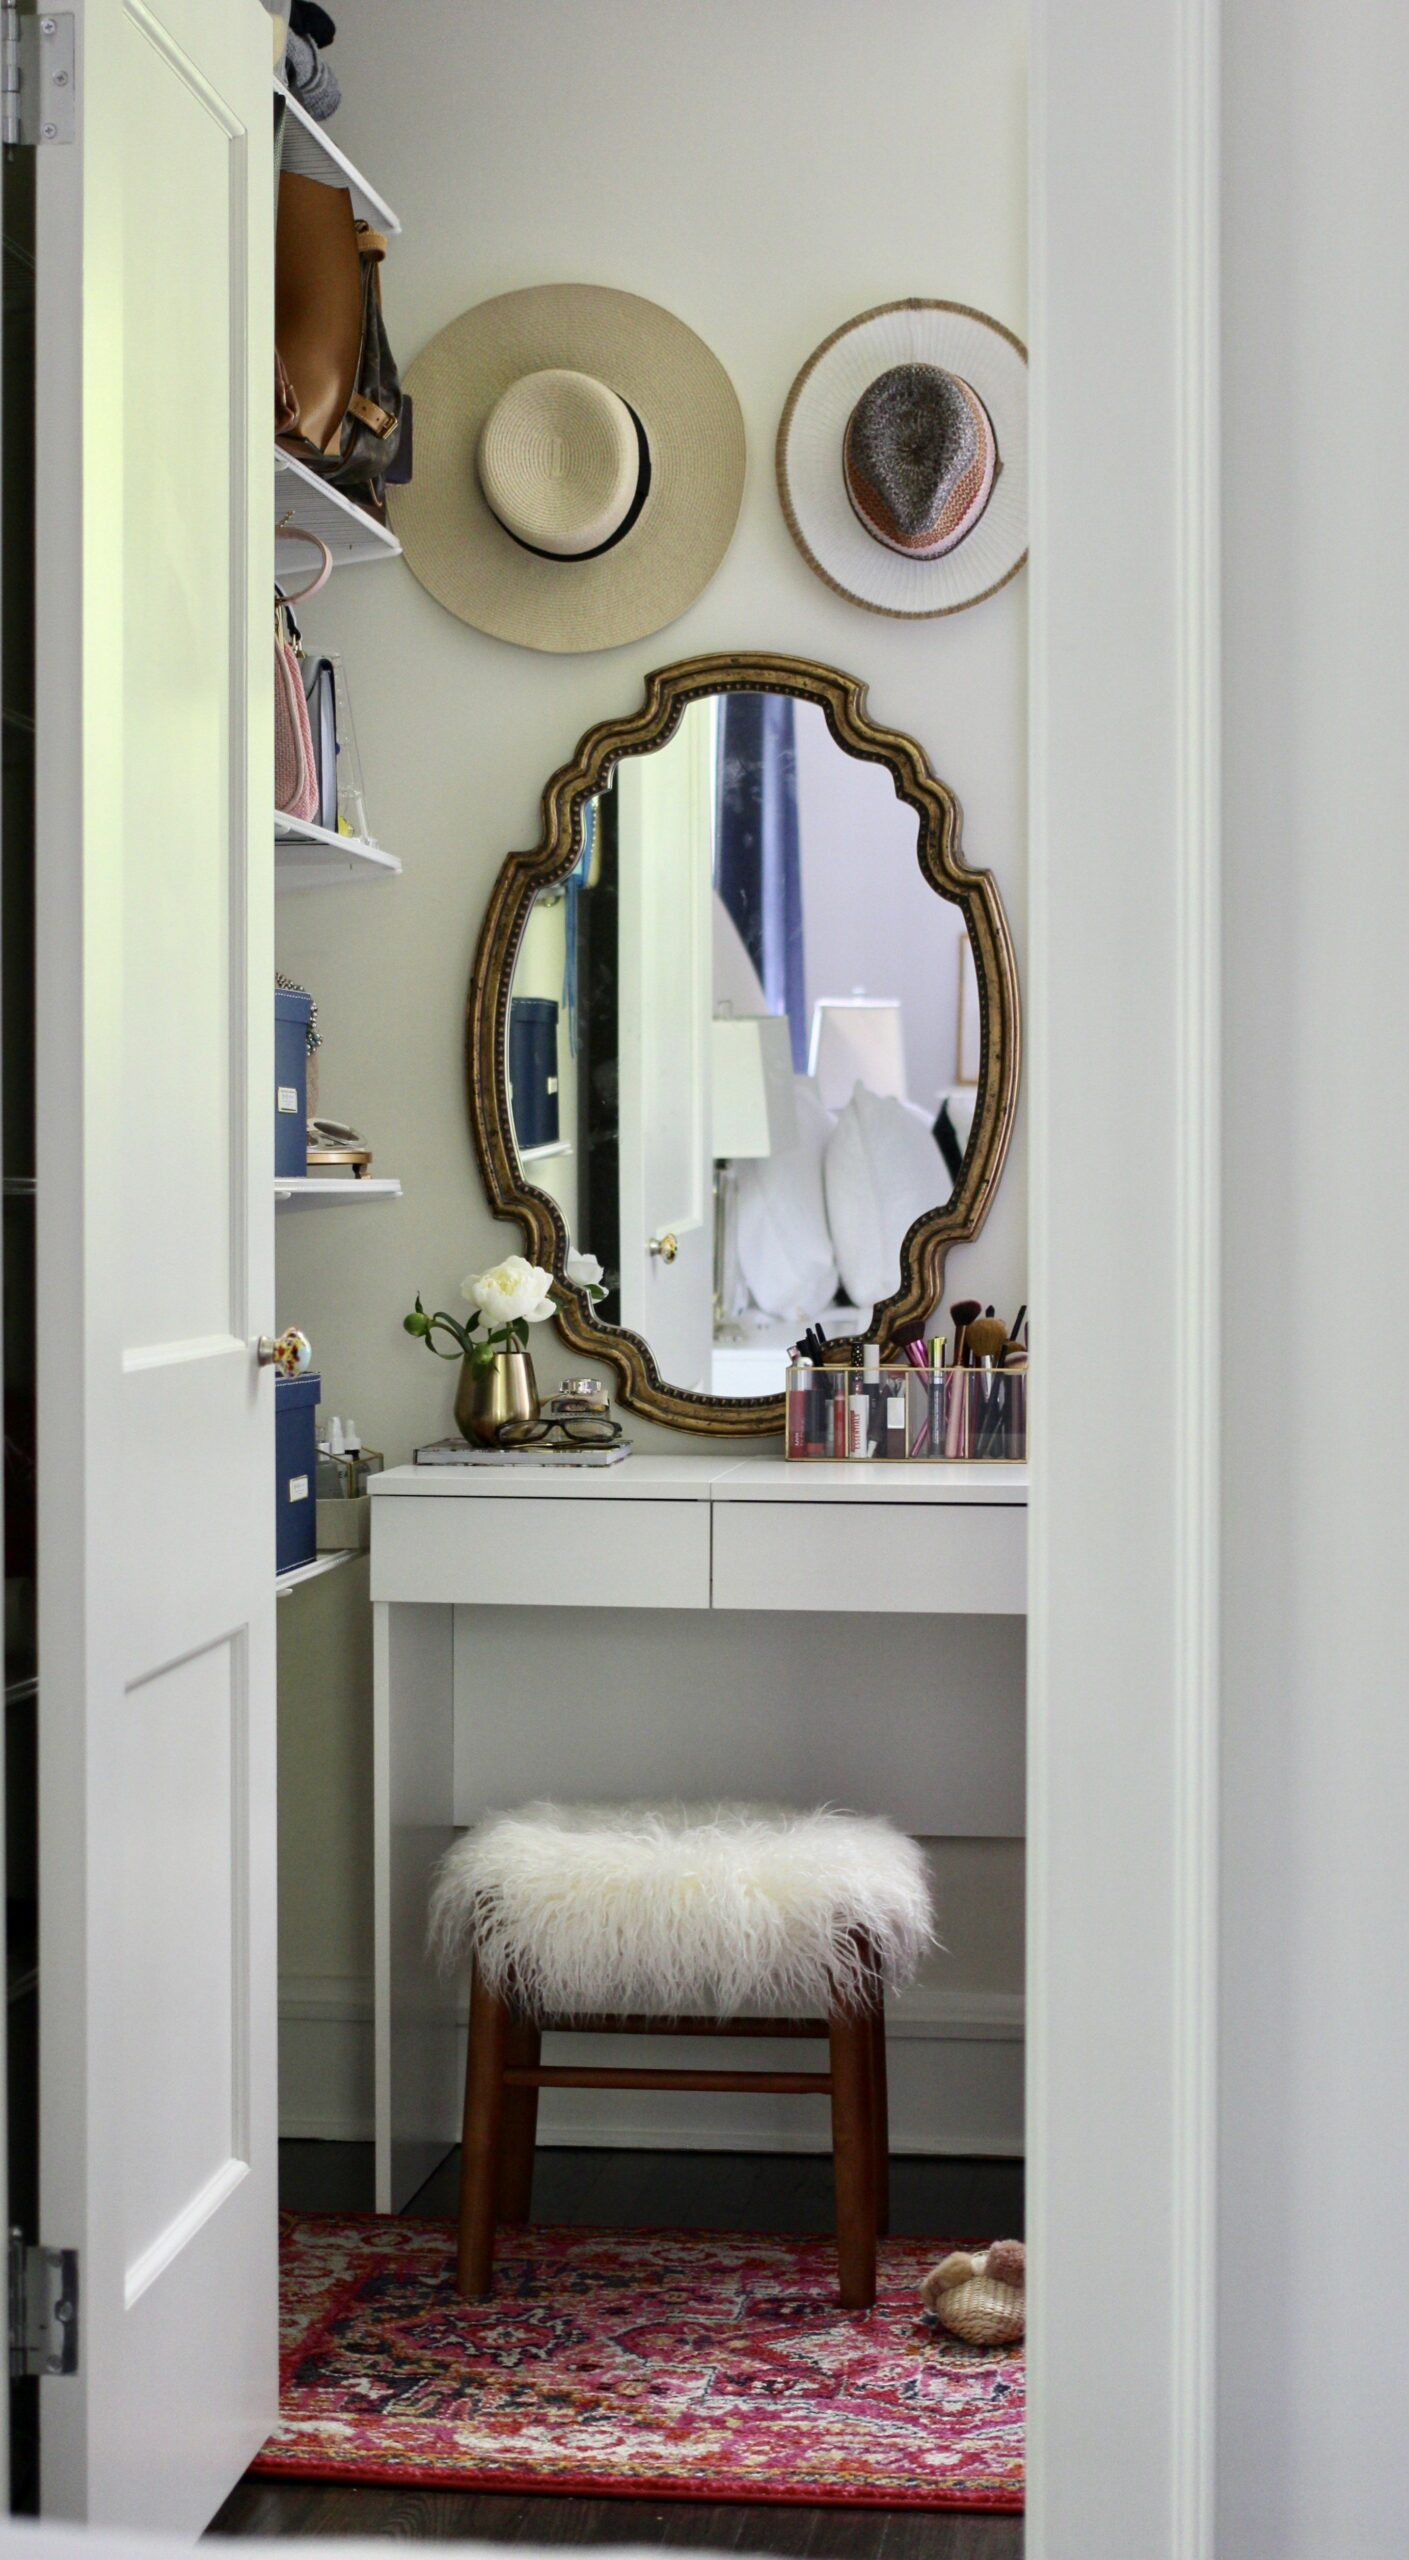 Small Spaces Decor Inspiration: How to Create a Vanity in Your ..